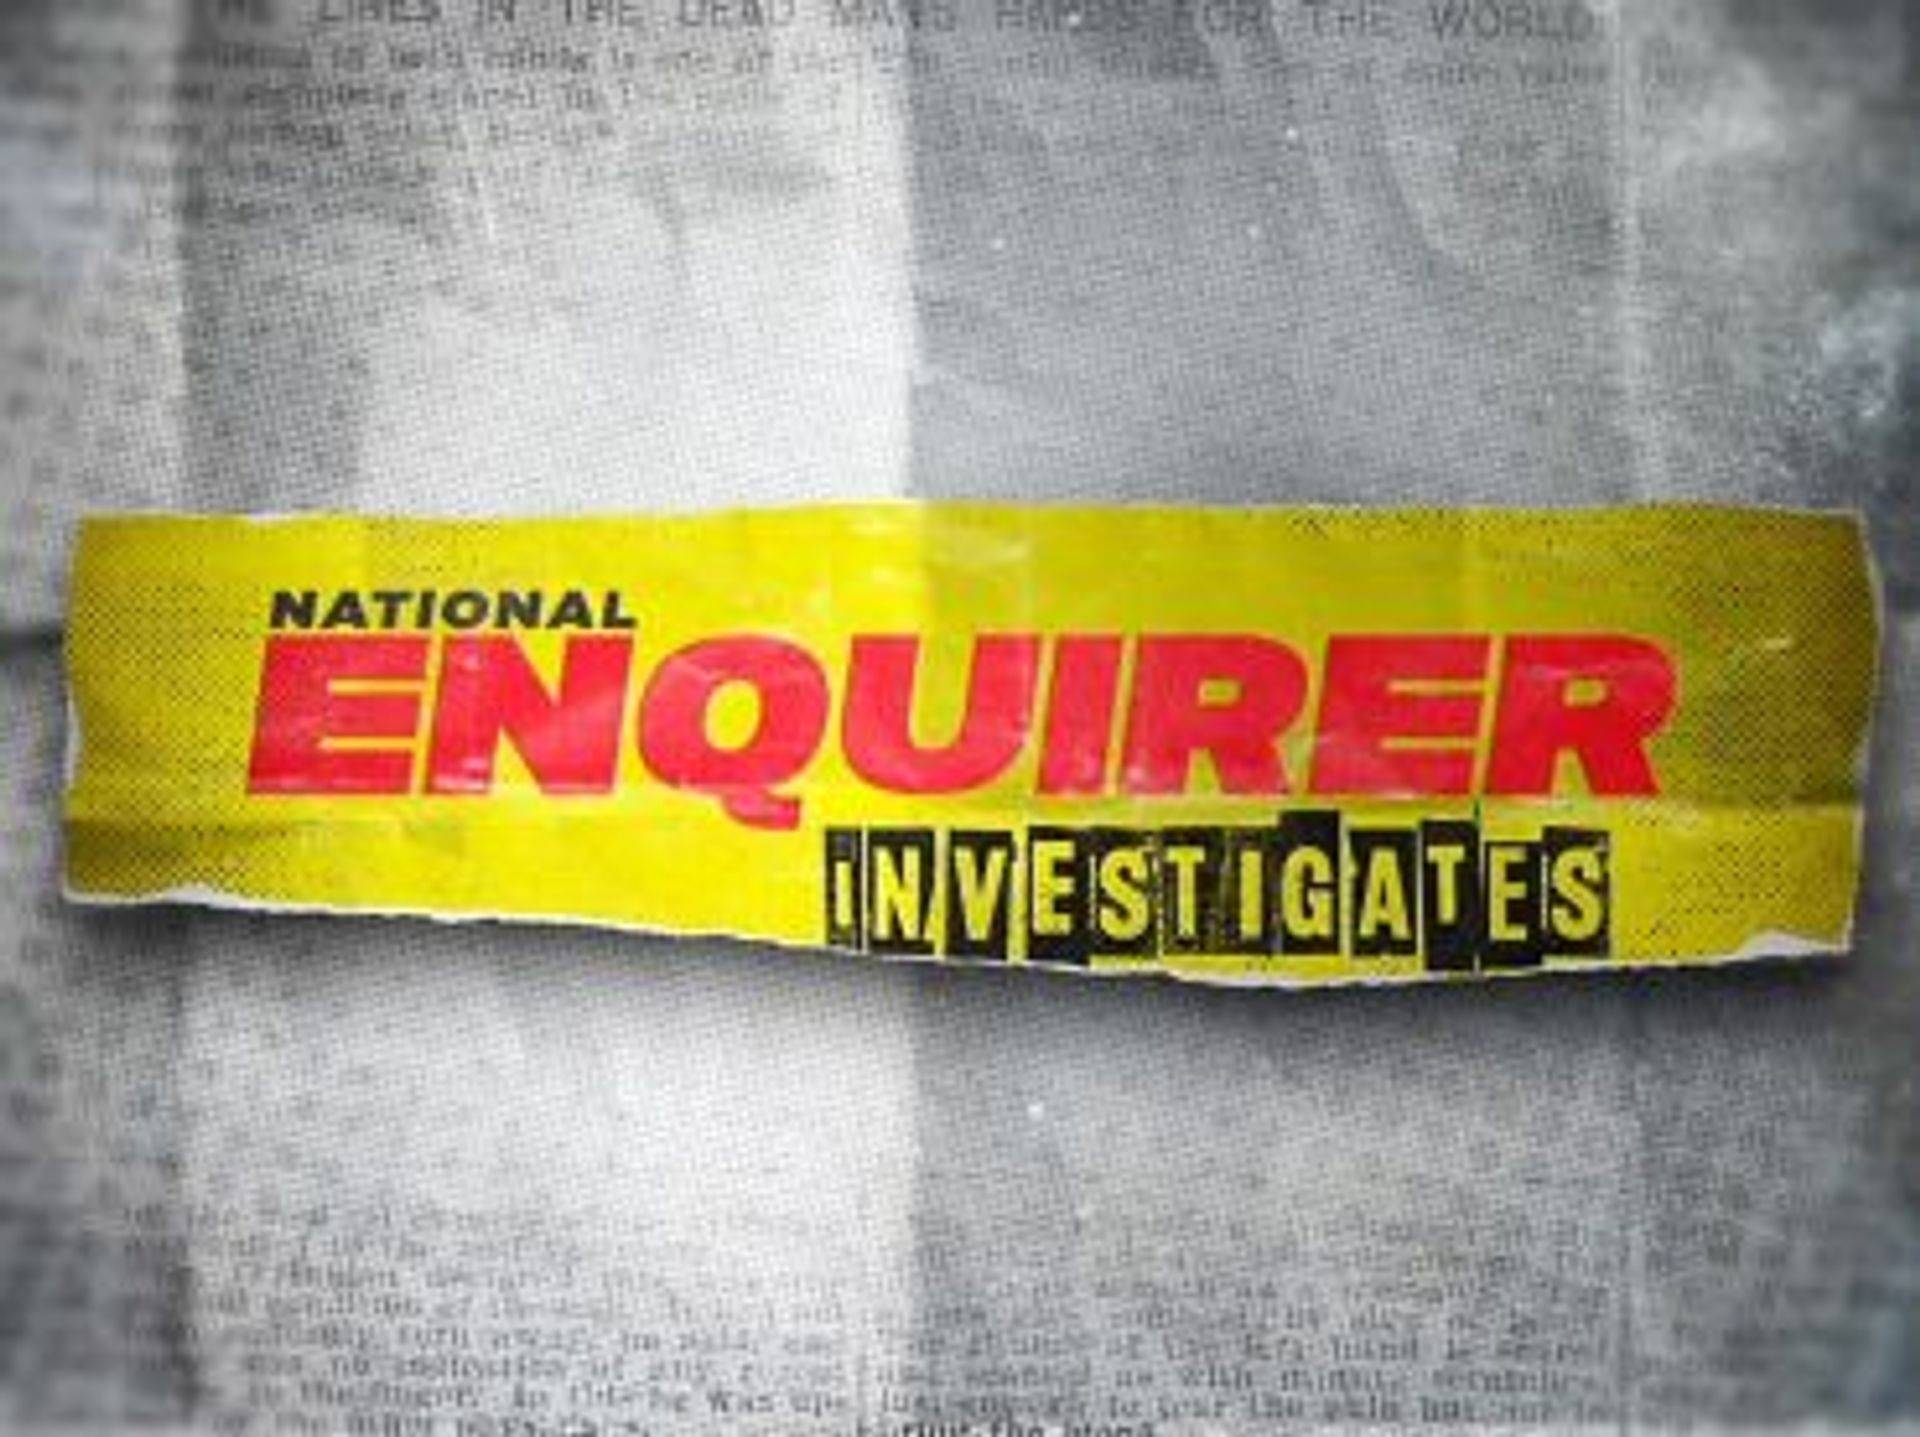 National Enquirer Investigates Nashville TN 2017